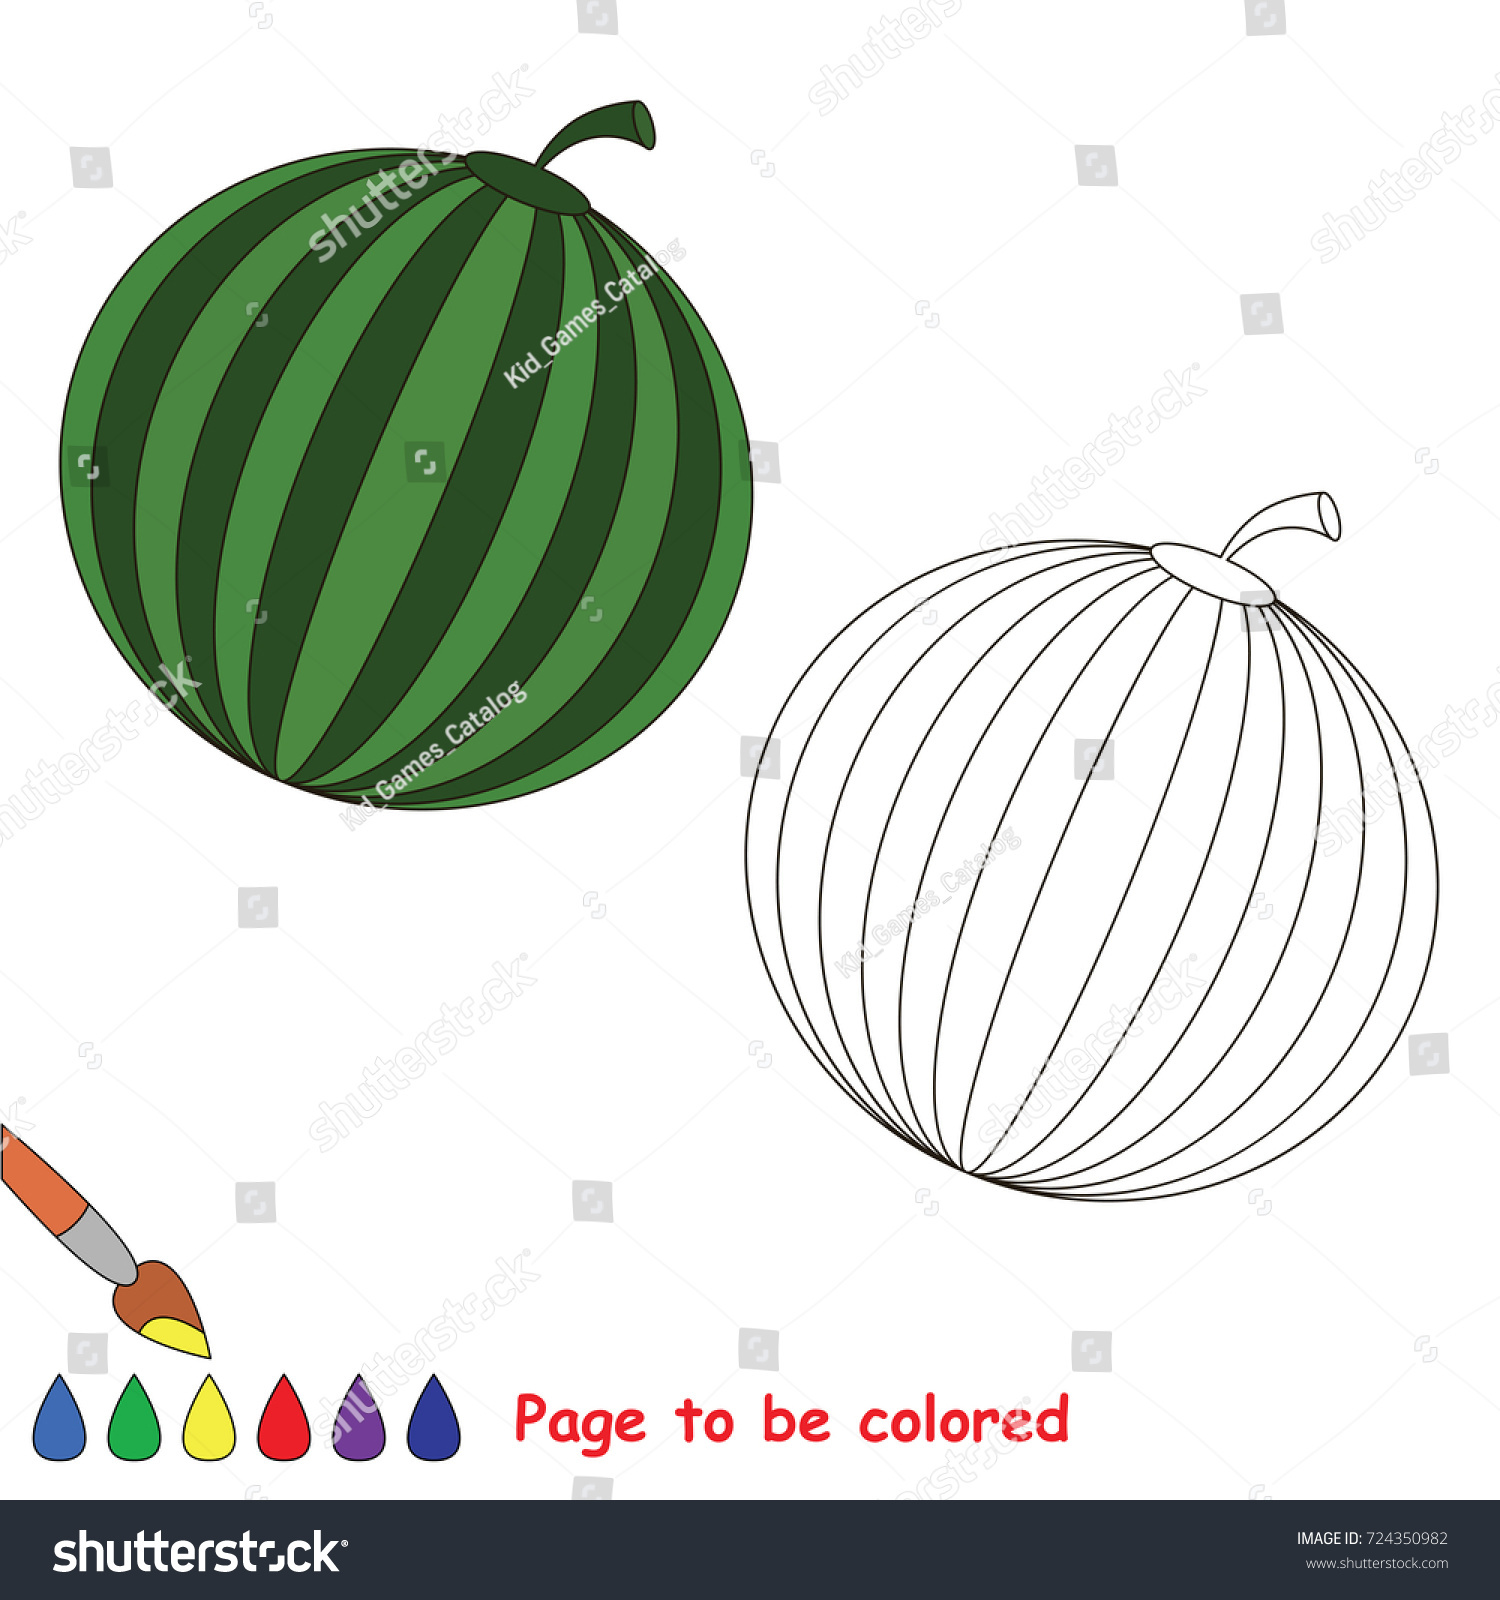 Circle Shape Watermelon Be Colored Coloring Stock Vector 724350982 ...